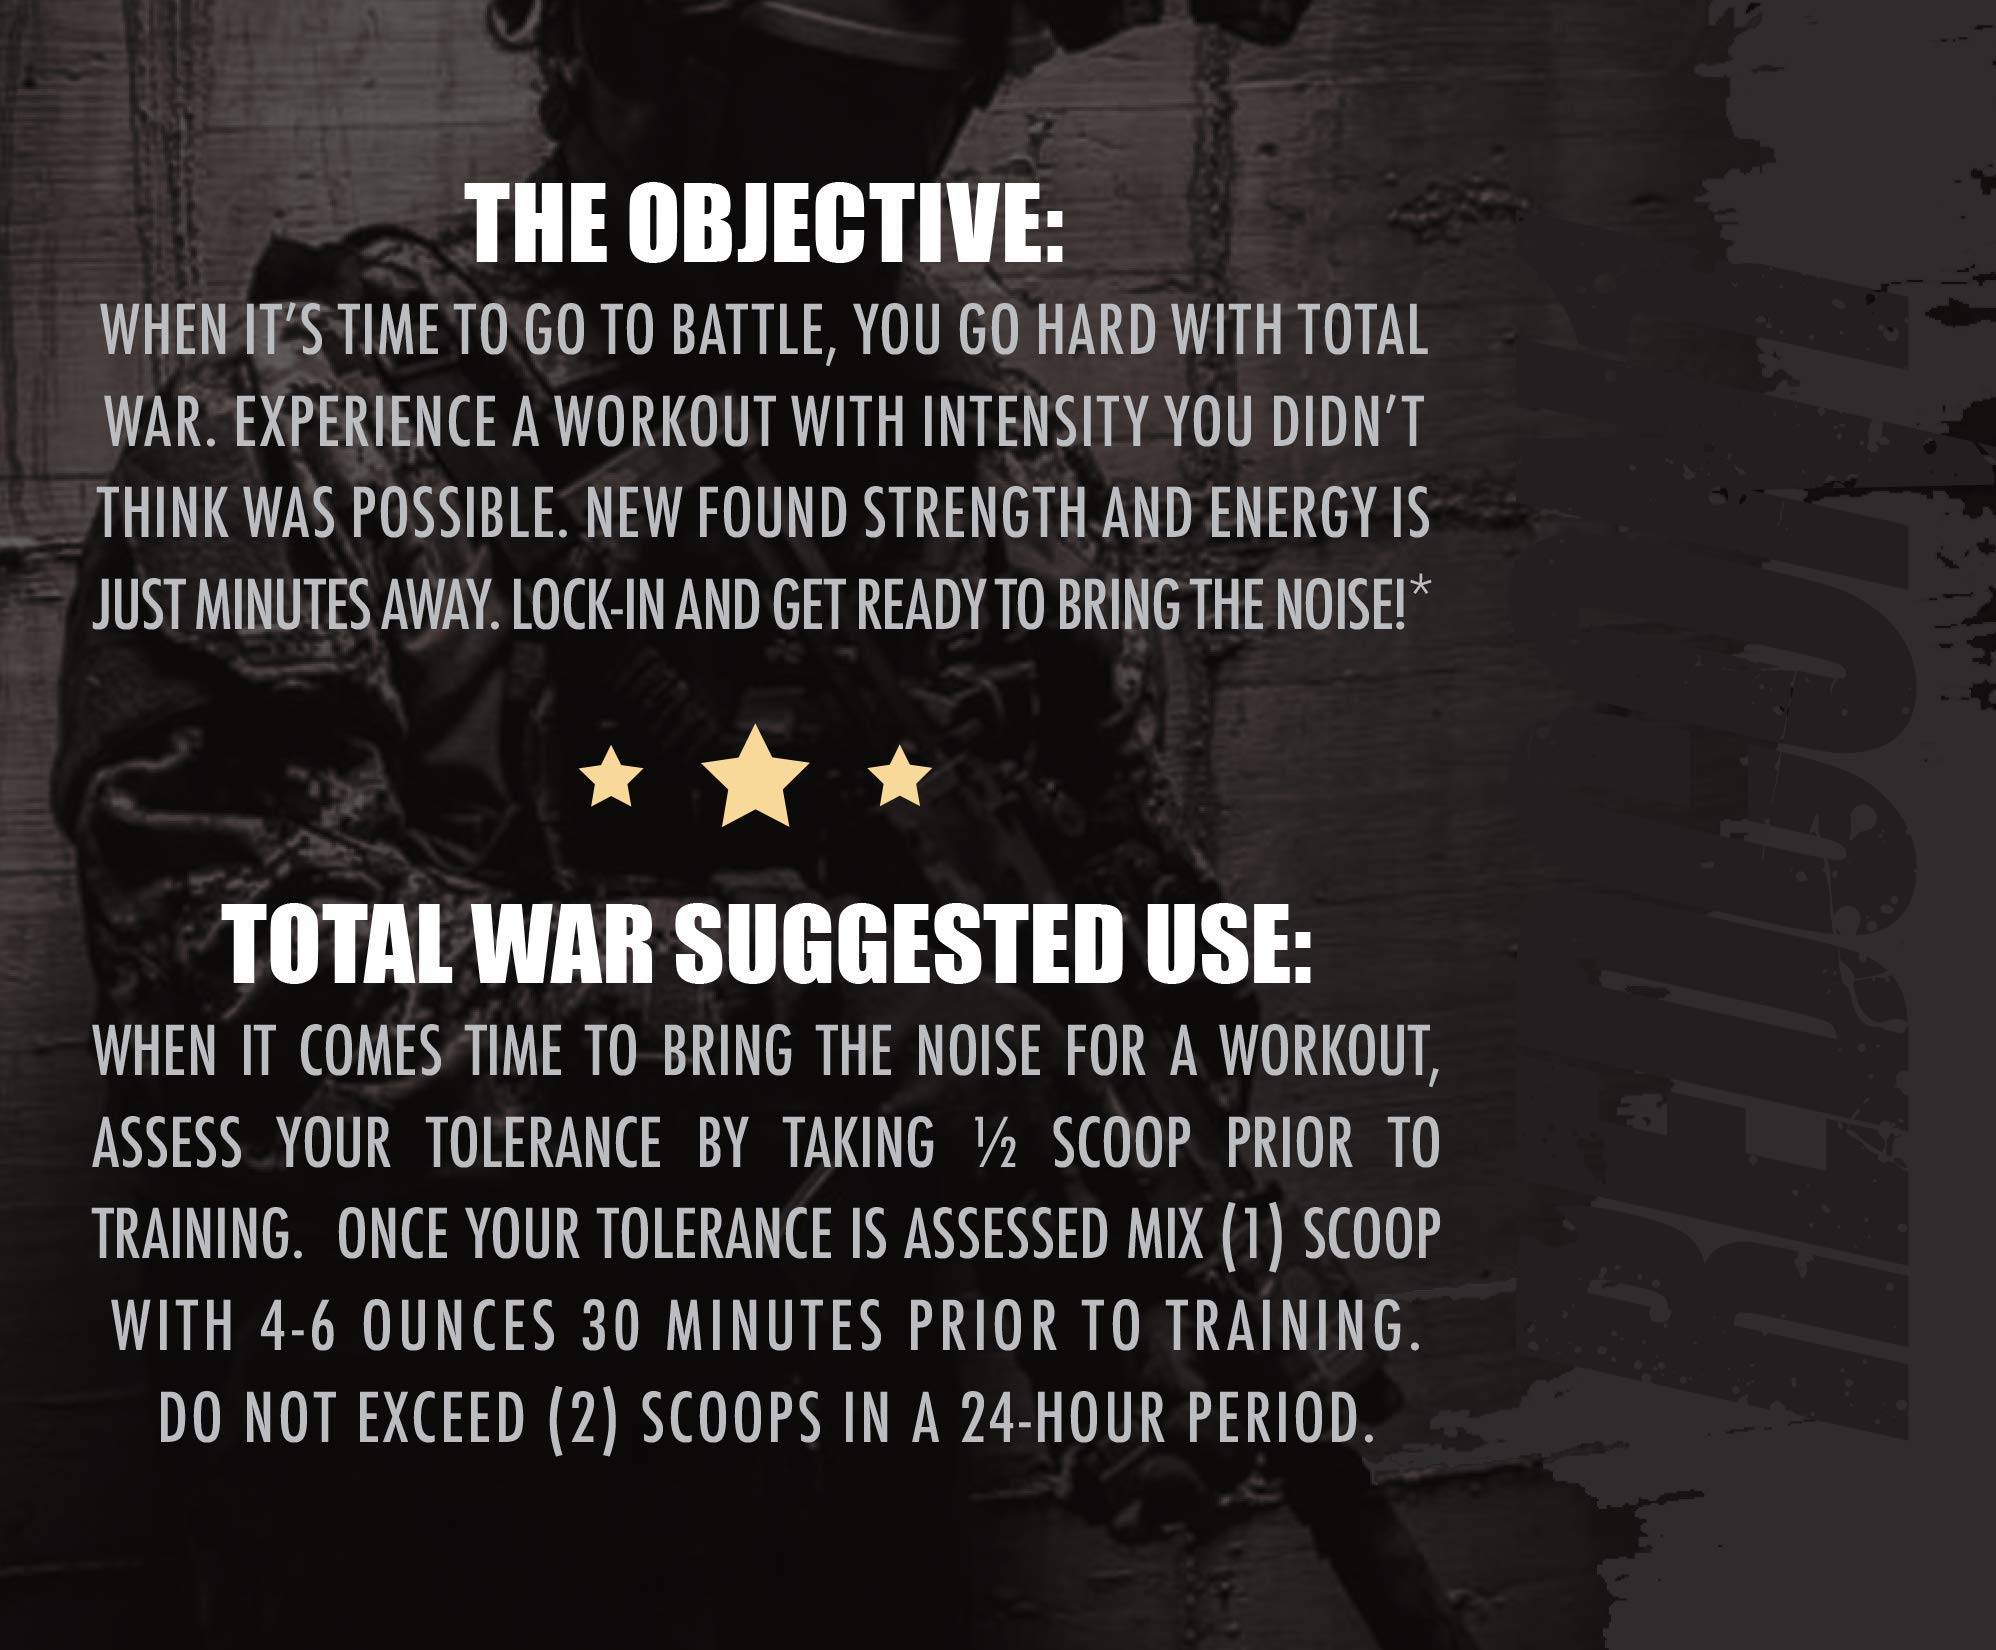 Redcon1 Total War - Pre Workout - 30 Servings - Newly Formulated (Firecracker) by Redcon1 (Image #3)